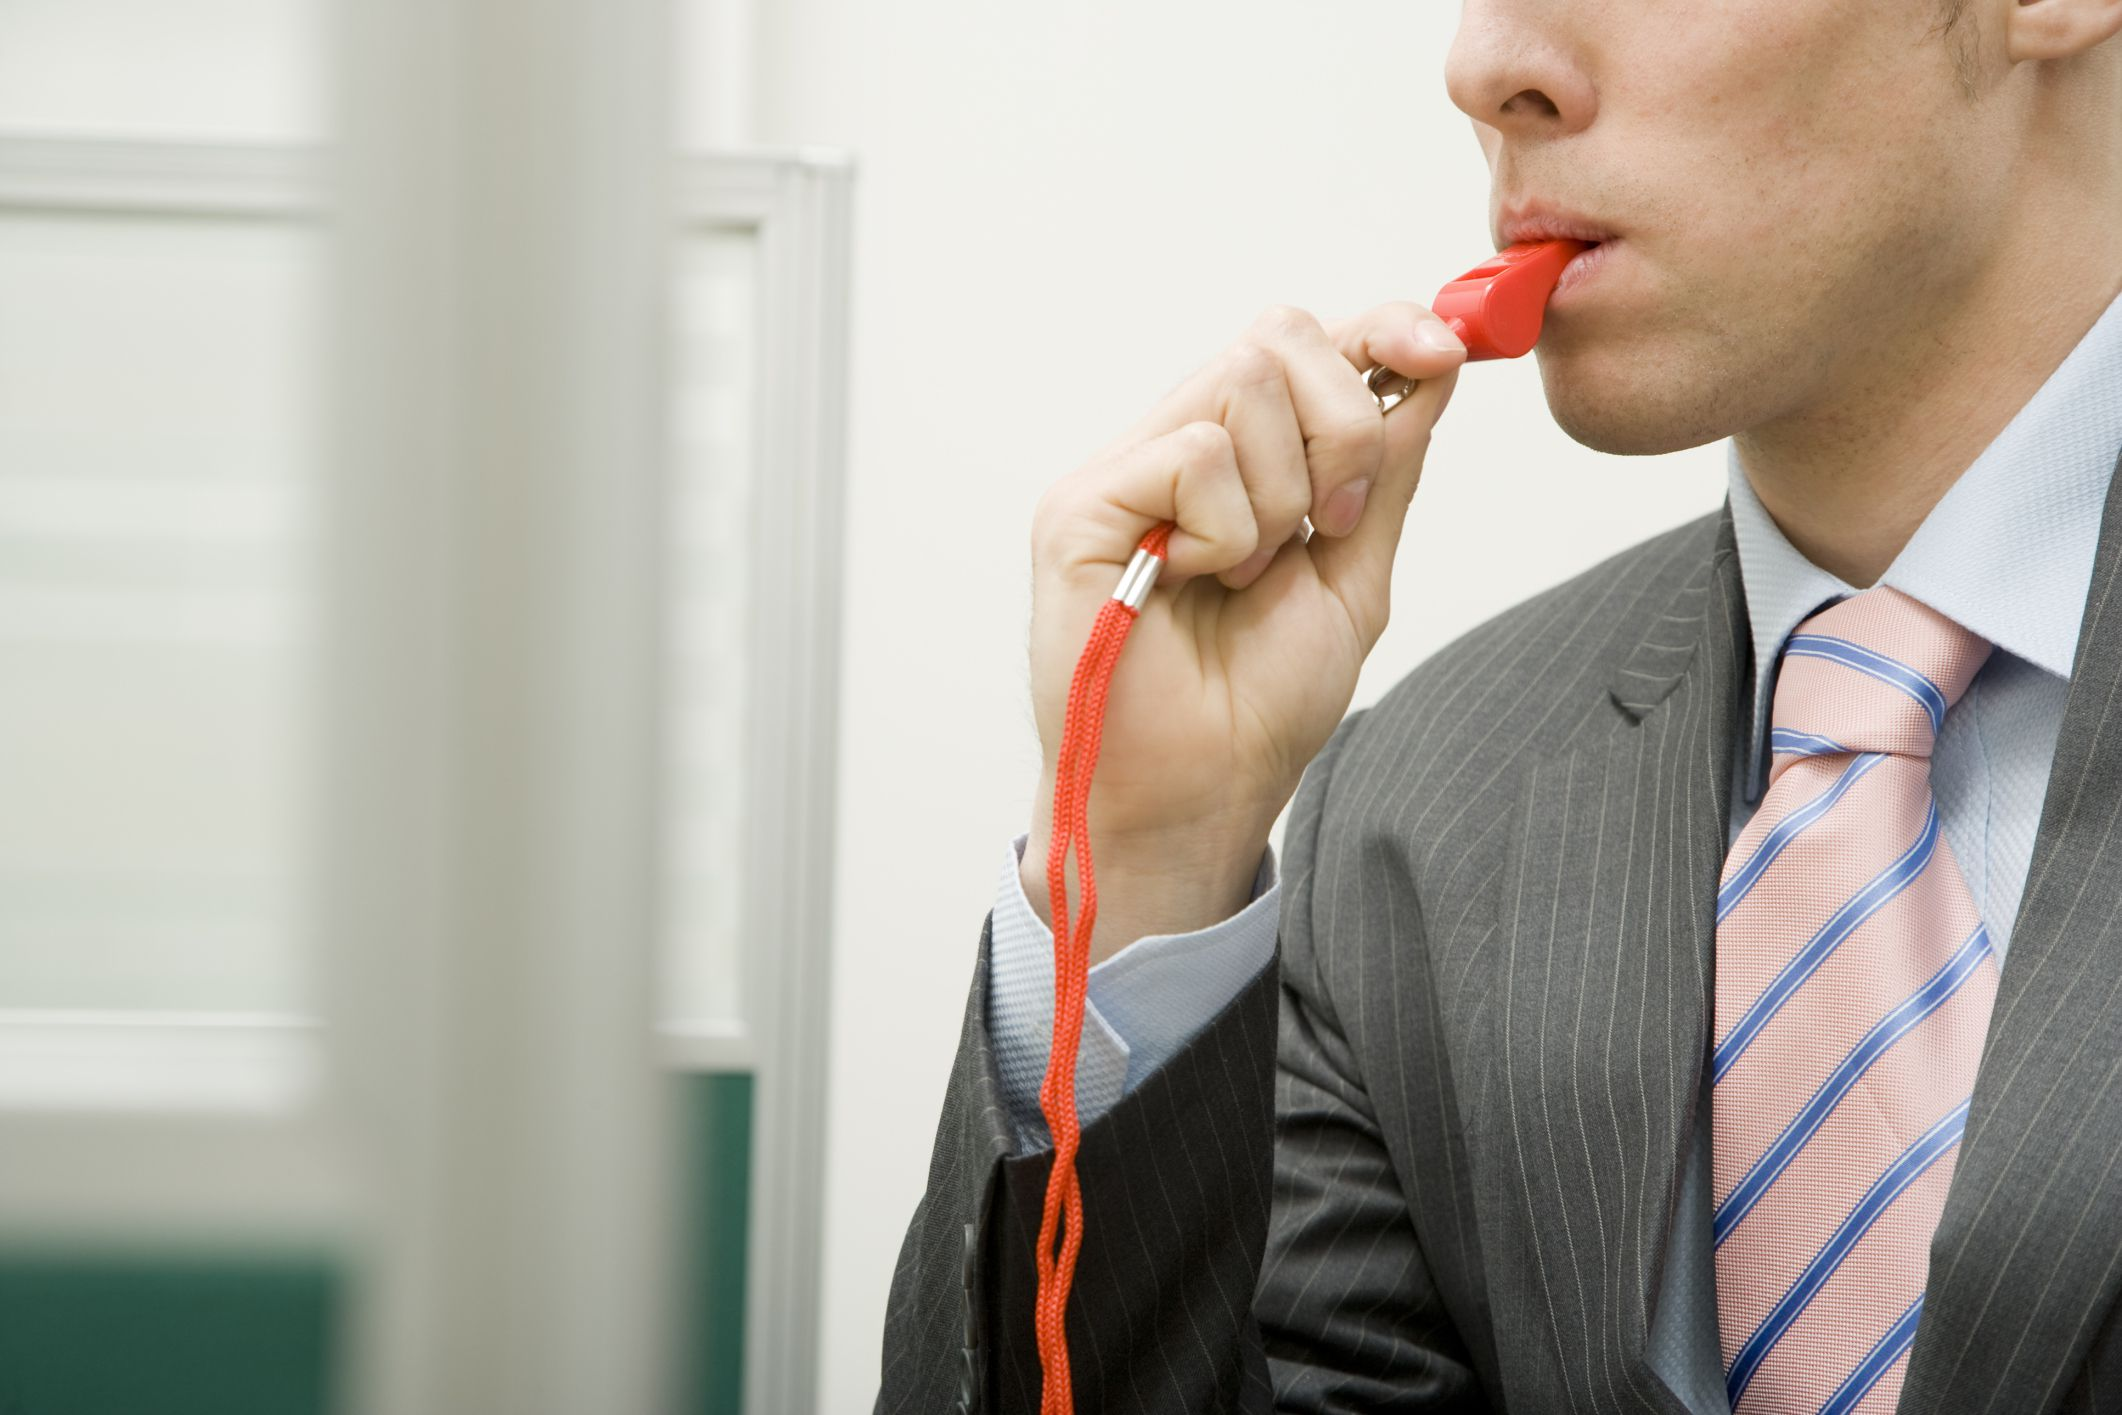 Whistleblower Laws: What Employers and Employees Need to Know